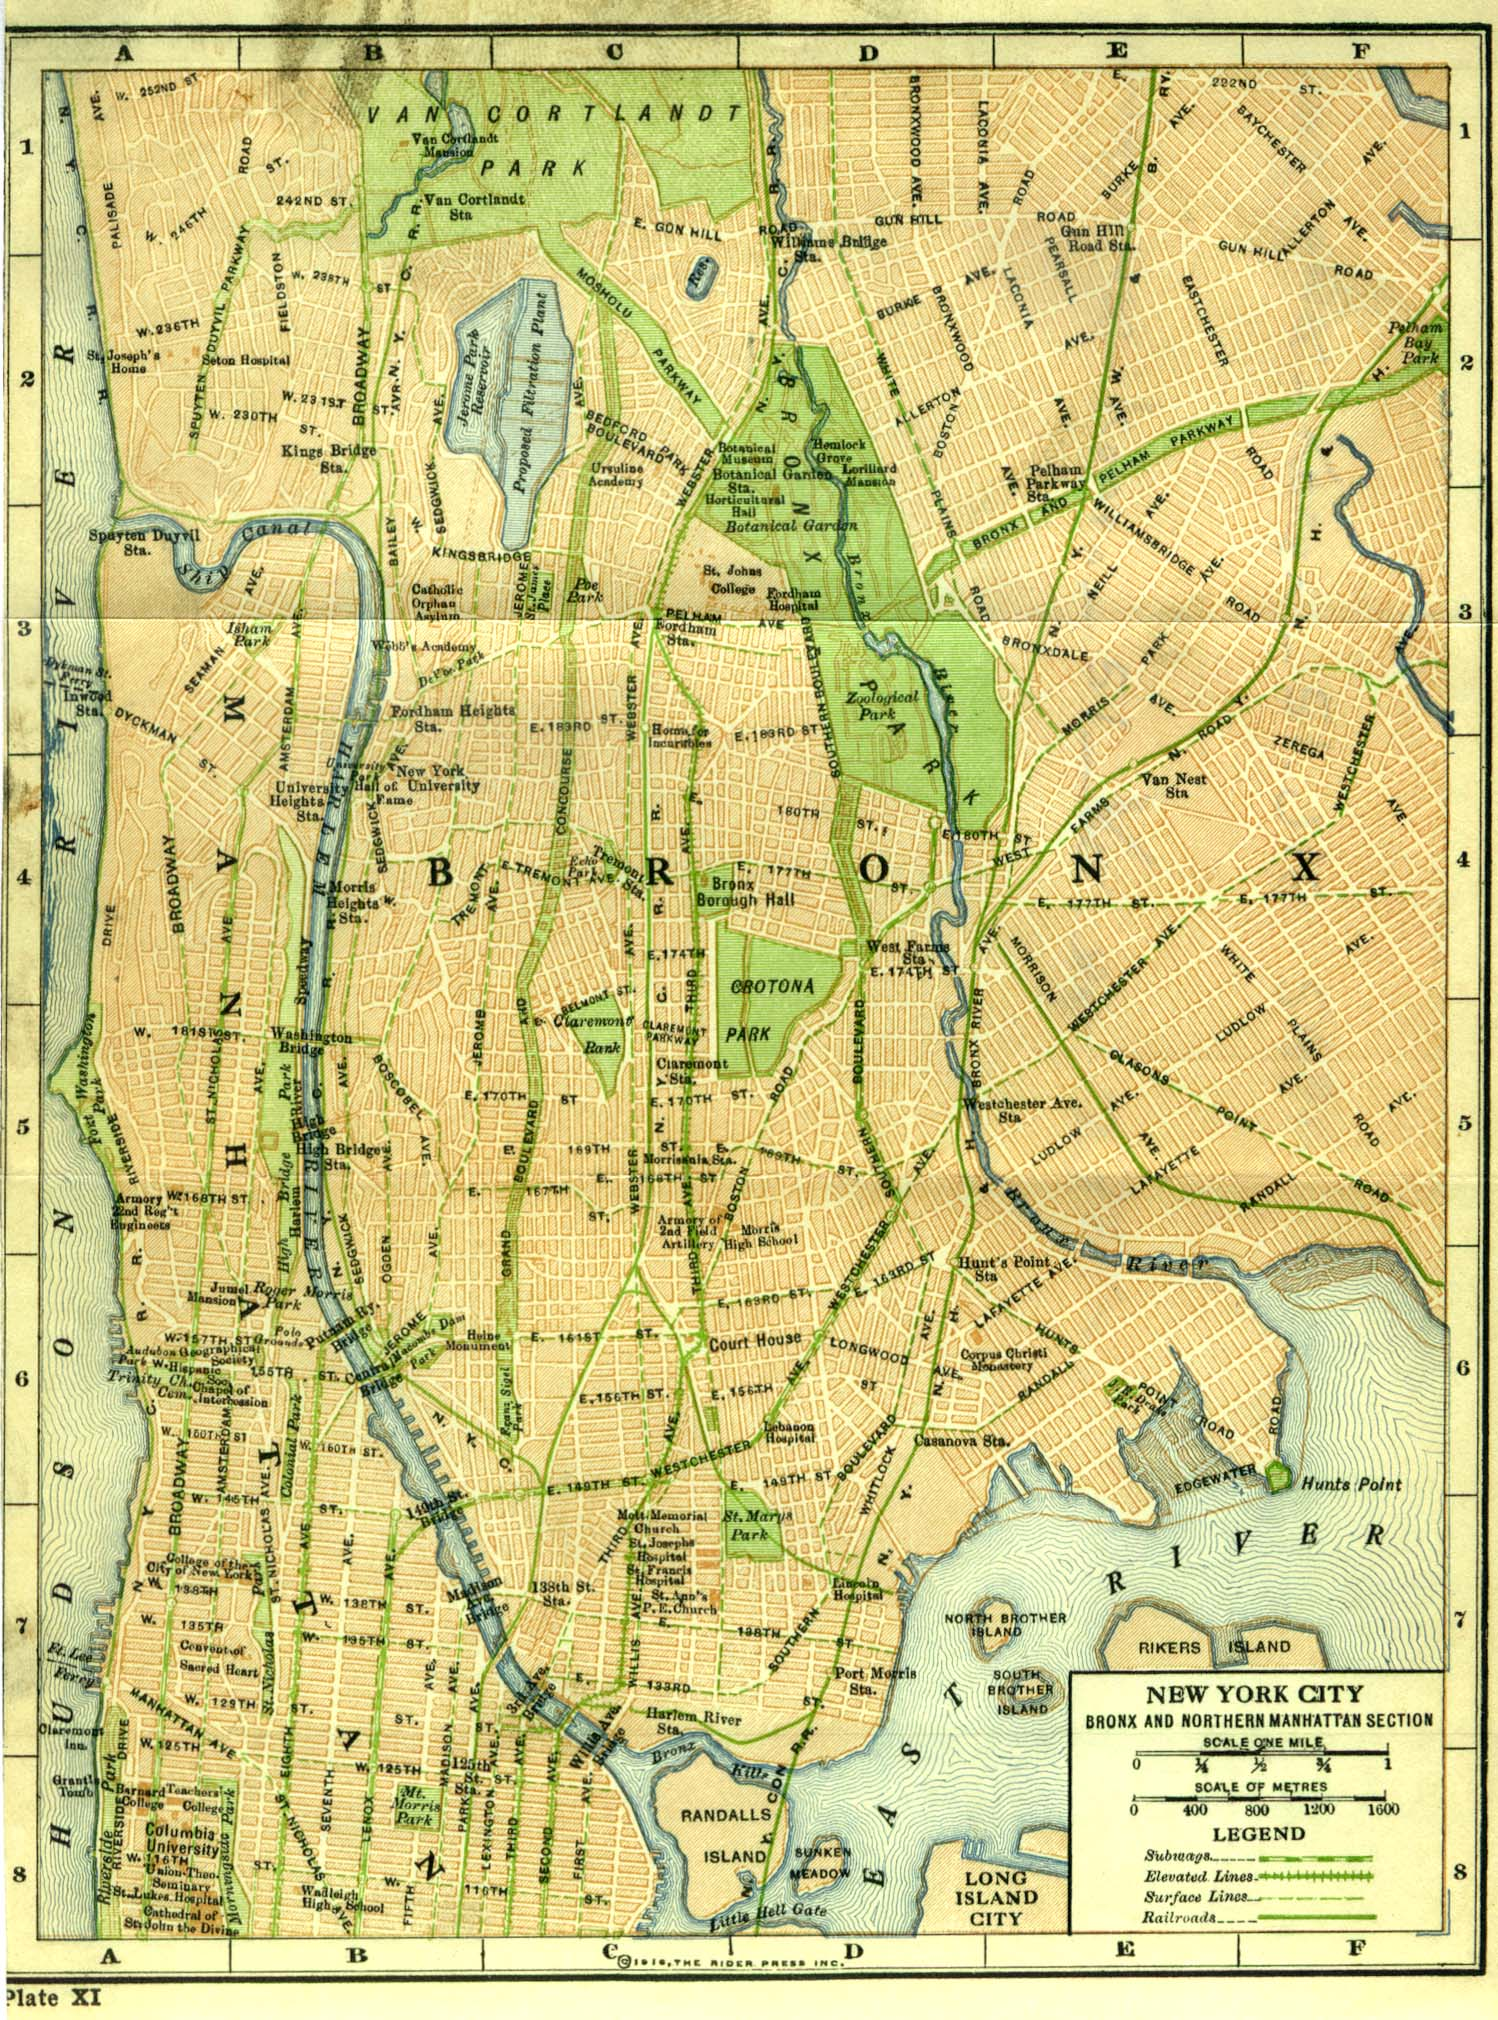 Historical Maps of U.S CitiesNew York City (Bronx and Northern Manhattan), New York 1916 Rider's New York City, Henry Holt and Company, 1916 (710K)